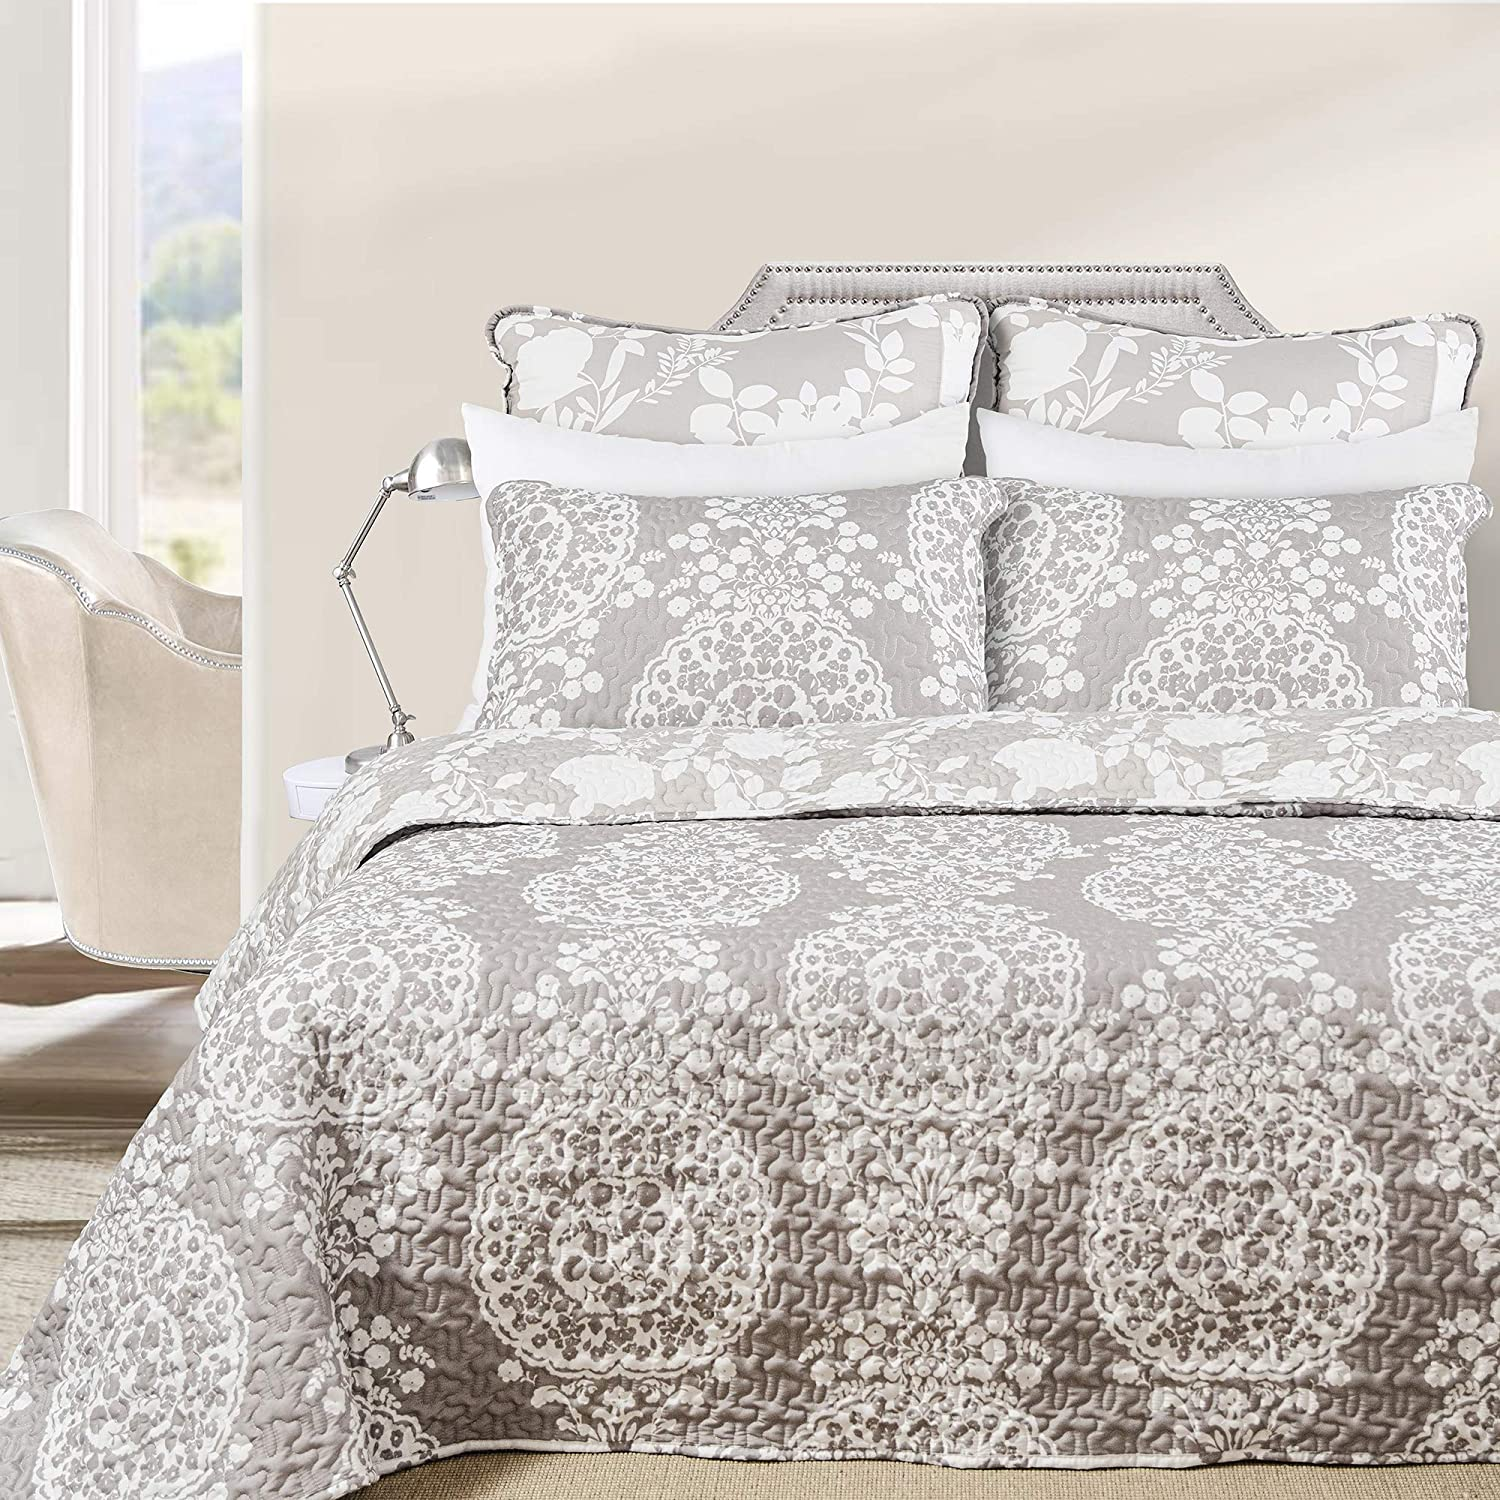 DriftAway 3 Piece Samantha Reversible Quilt Set Bedspreads Coverlet Floral Medallion Pattern Cover Prewashed Light Gray and White Queen